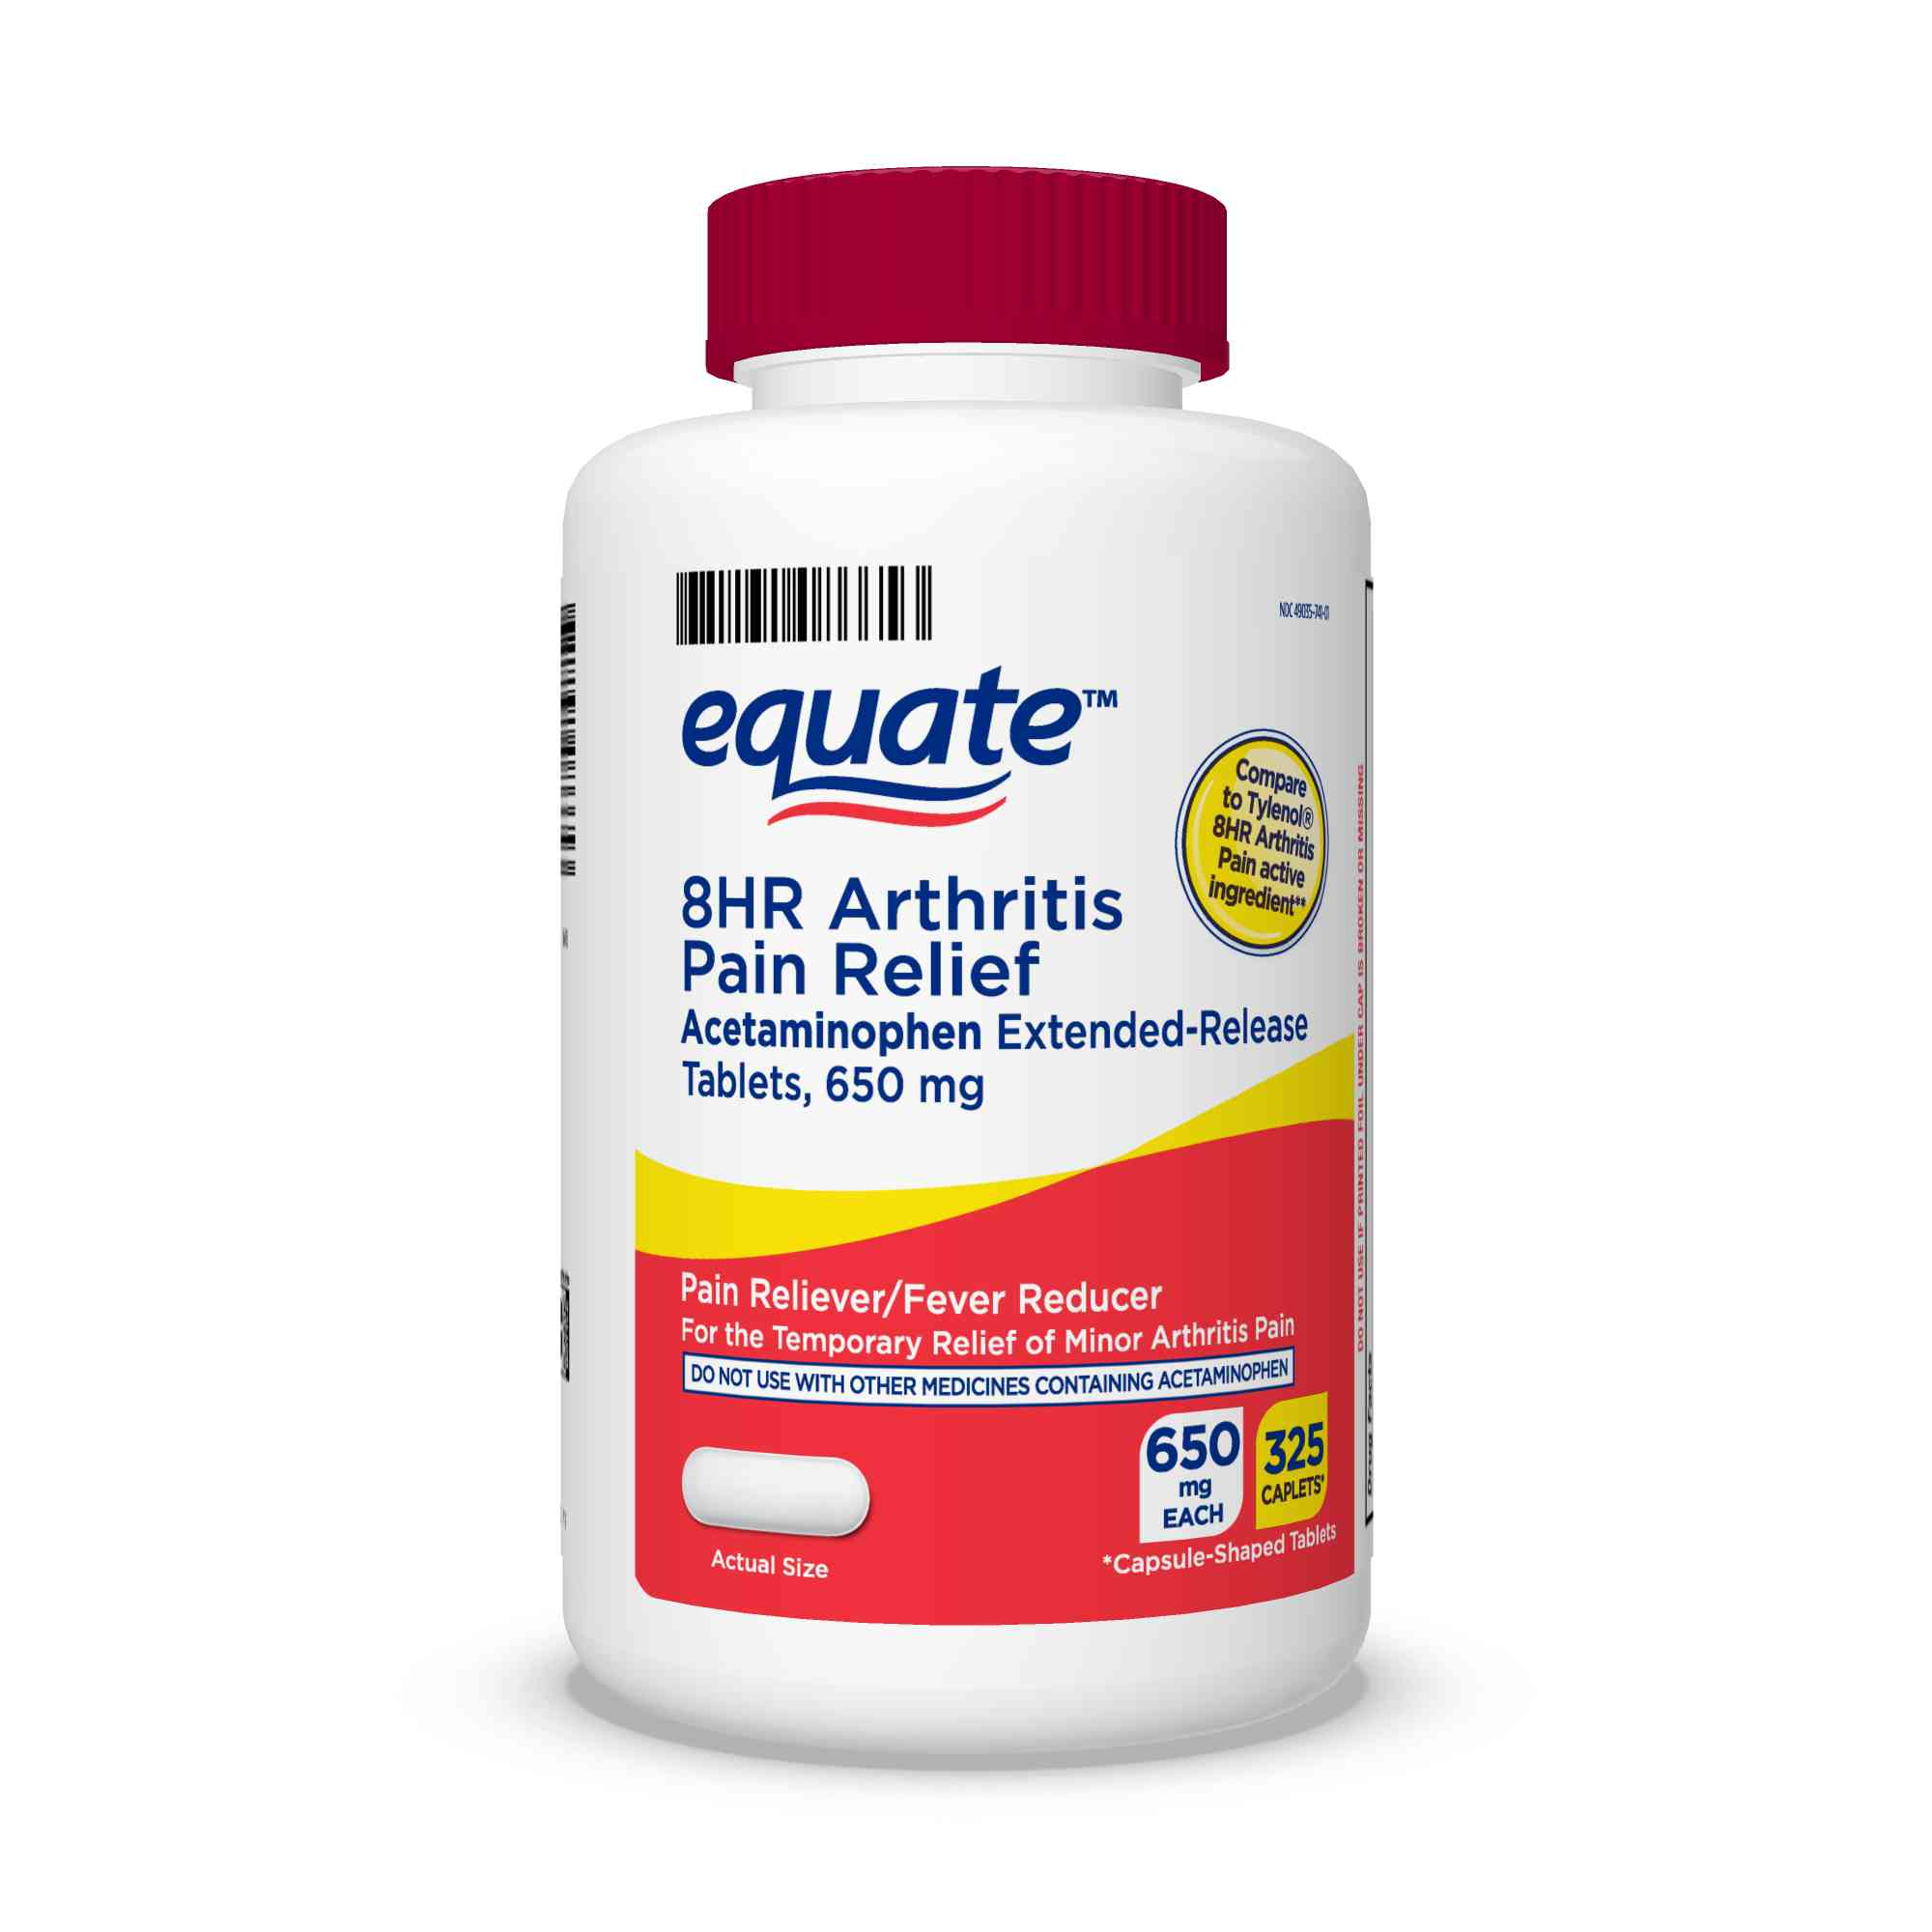 Equate Acetaminophen Extended-Release Tablets 650 mg ...